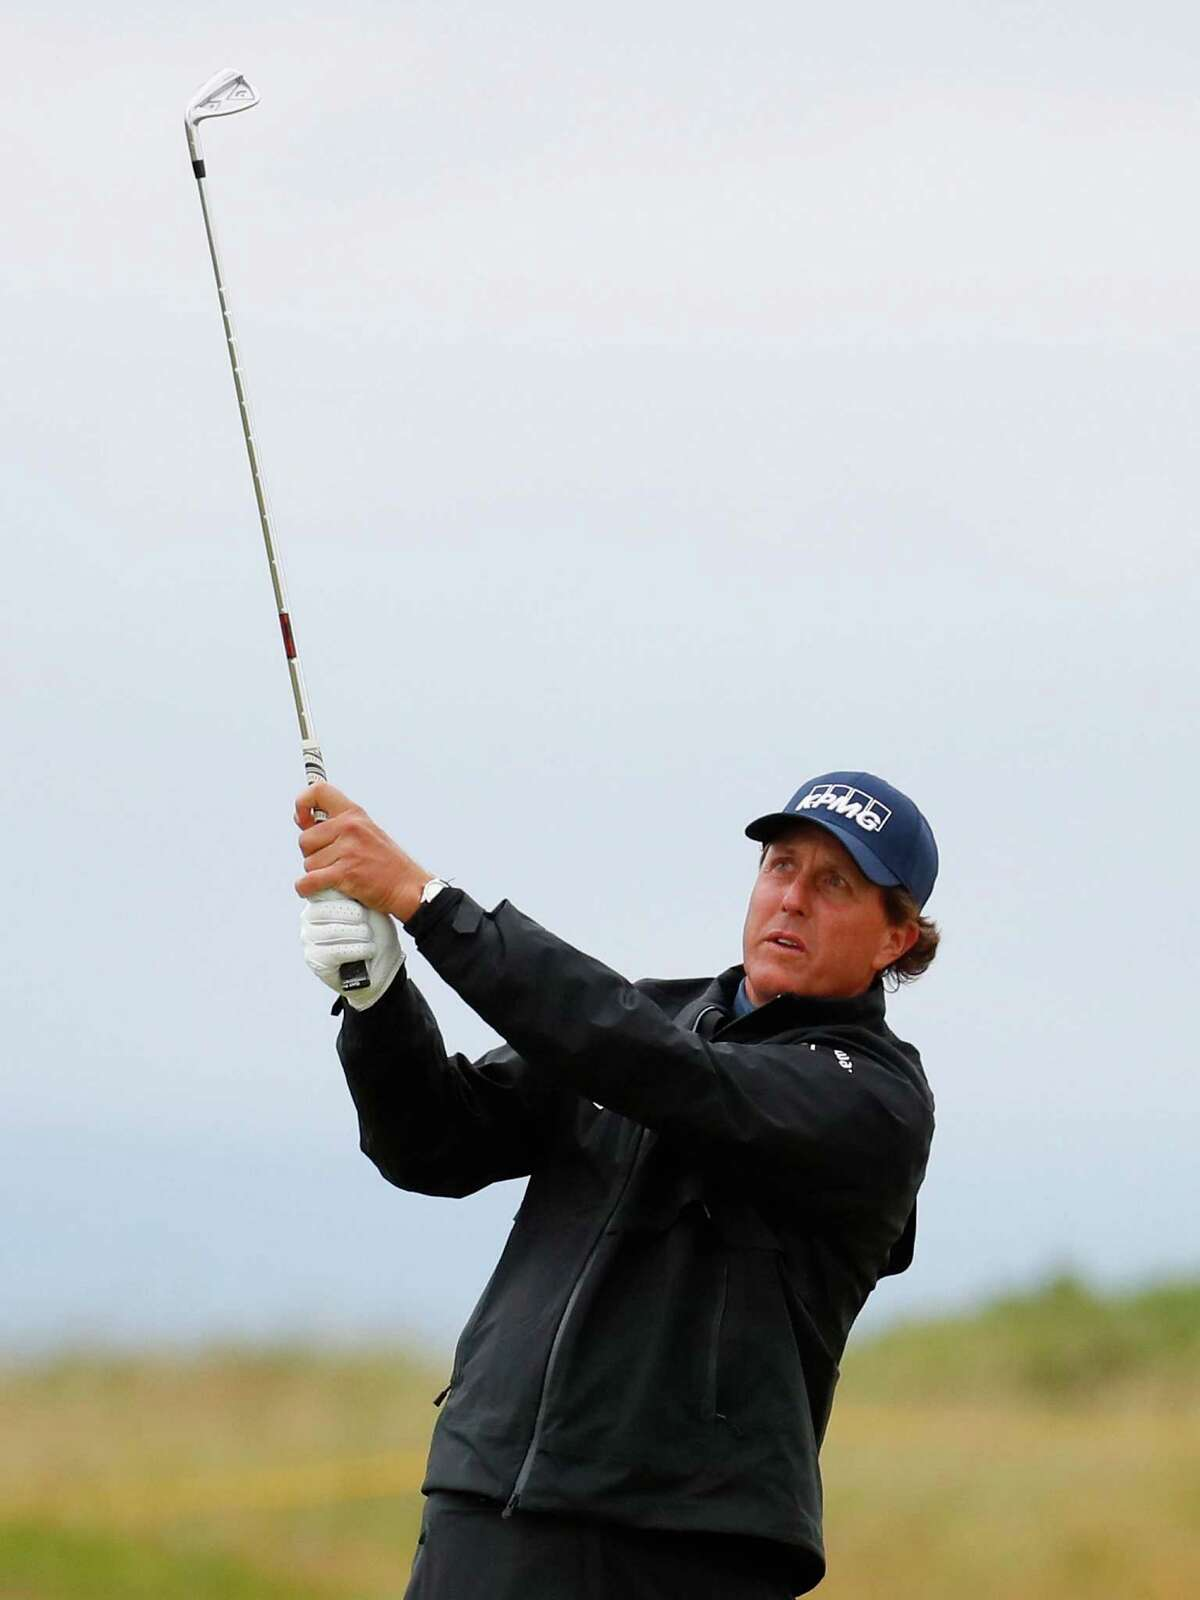 TROON, SCOTLAND - JULY 15: Phil Mickelson of the United States hits his second shot on the 3rd during the second round on day two of the 145th Open Championship at Royal Troon on July 15, 2016 in Troon, Scotland. (Photo by Kevin C. Cox/Getty Images) ORG XMIT: 631393979